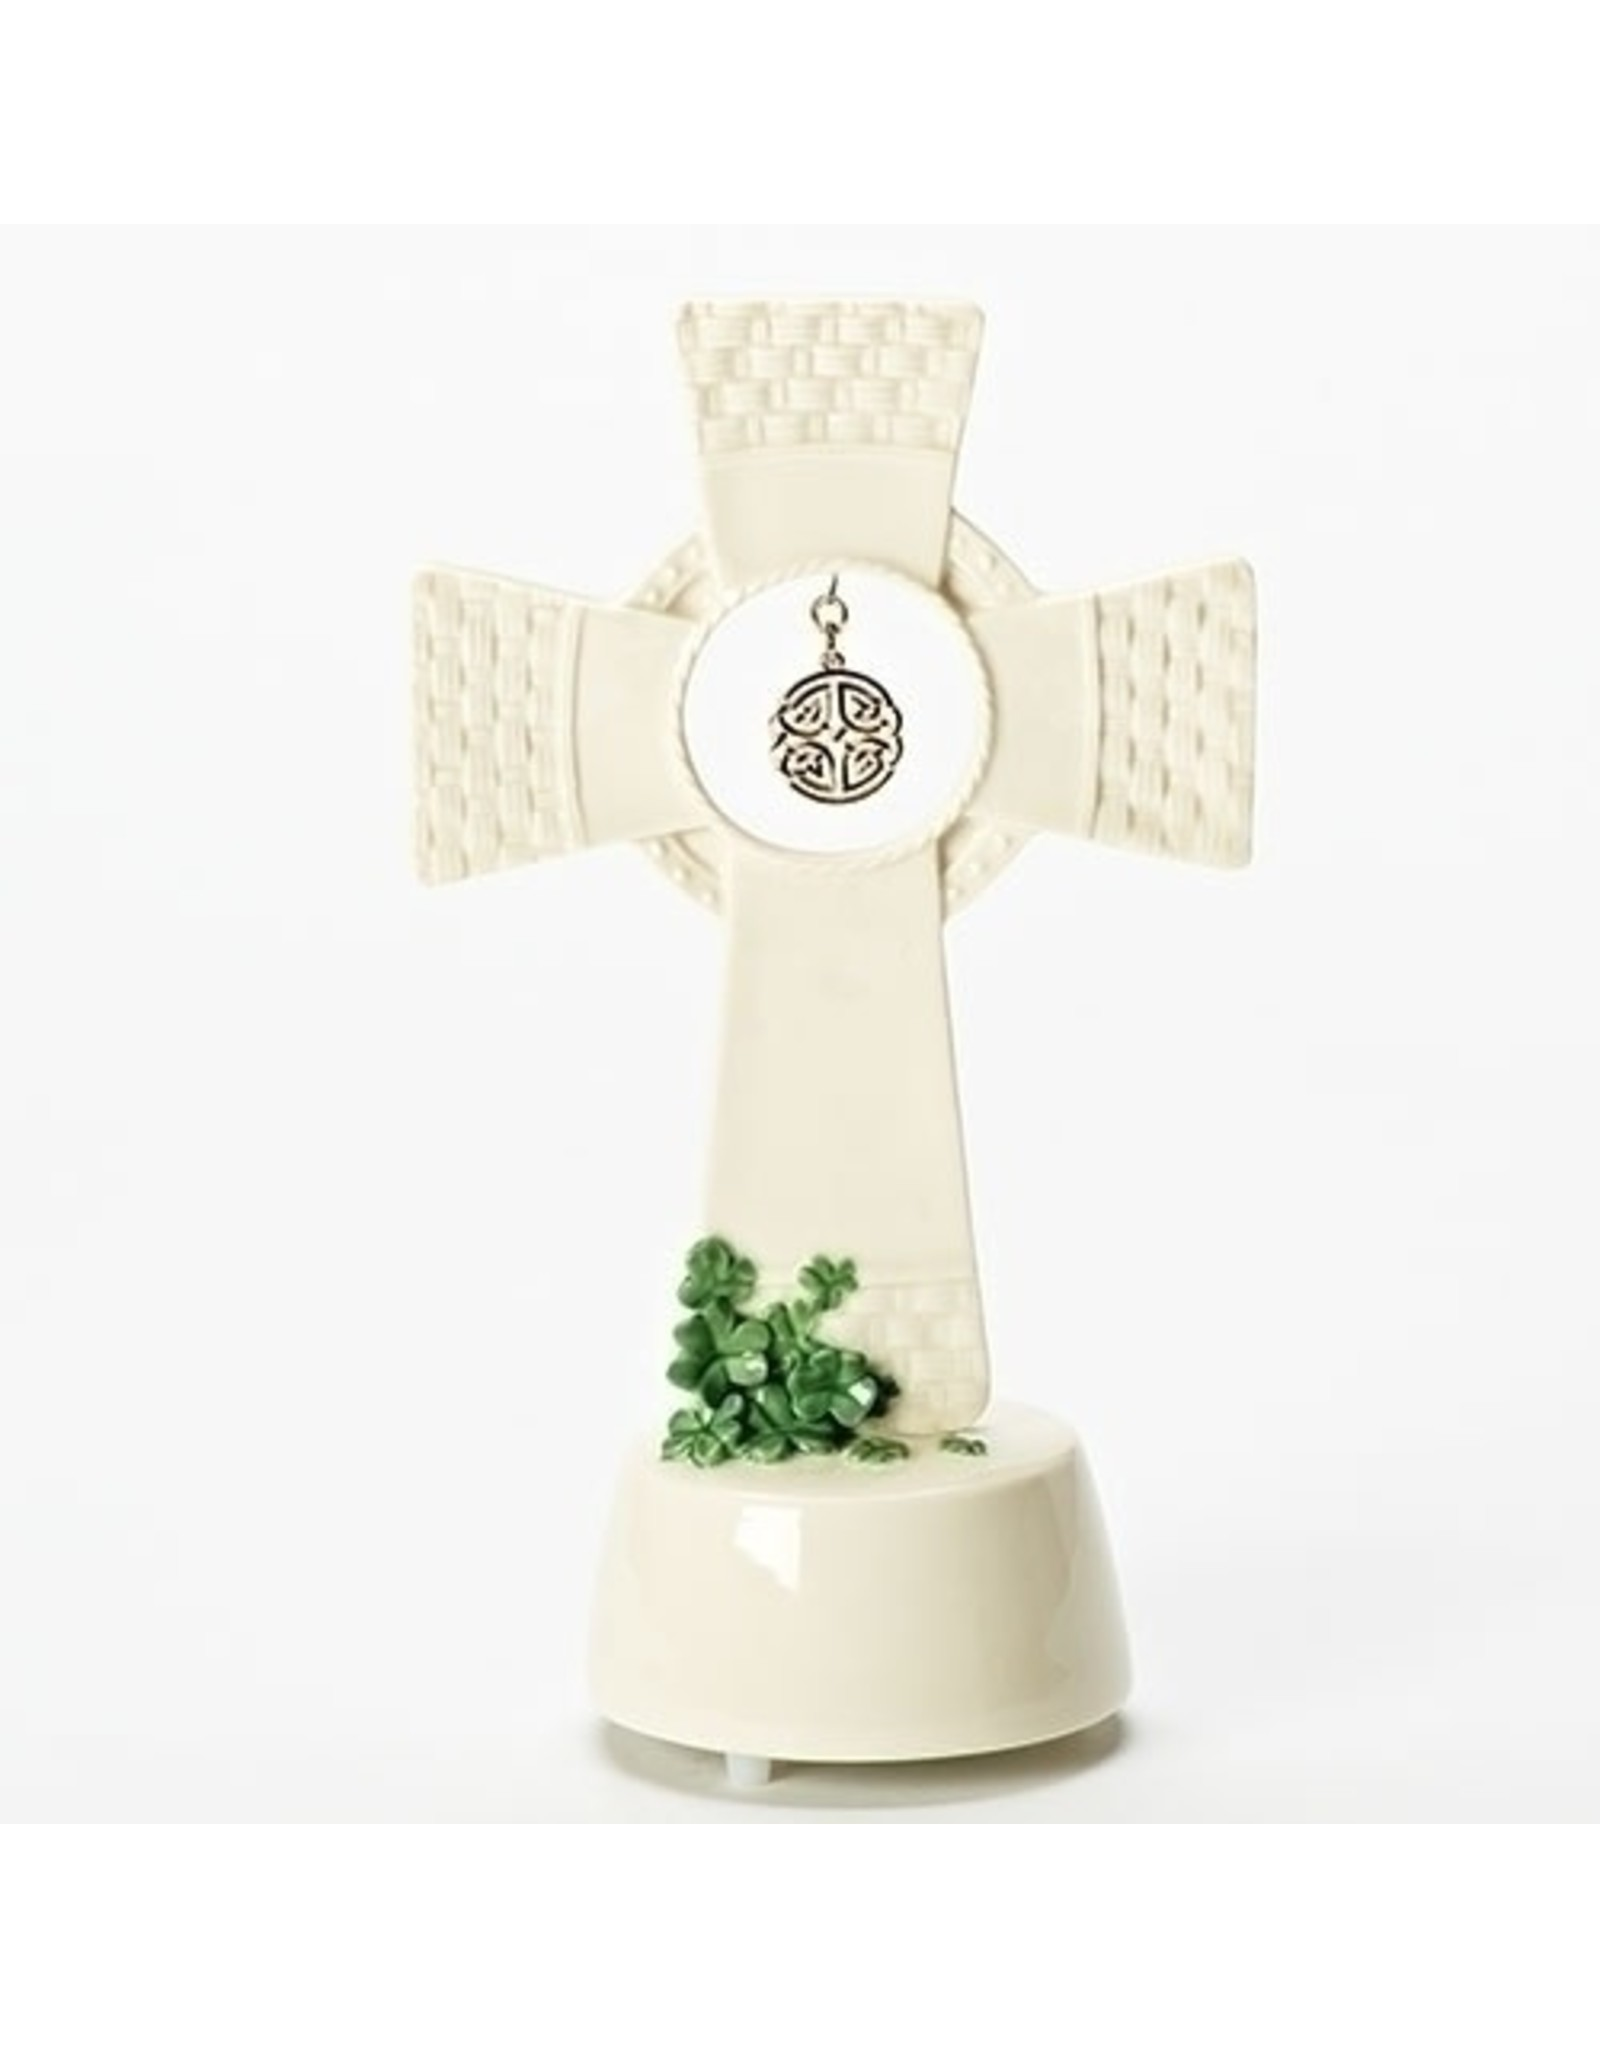 "Roman Shamrock Basketweave 8.5"" Standing Cross with Hanging Knot"